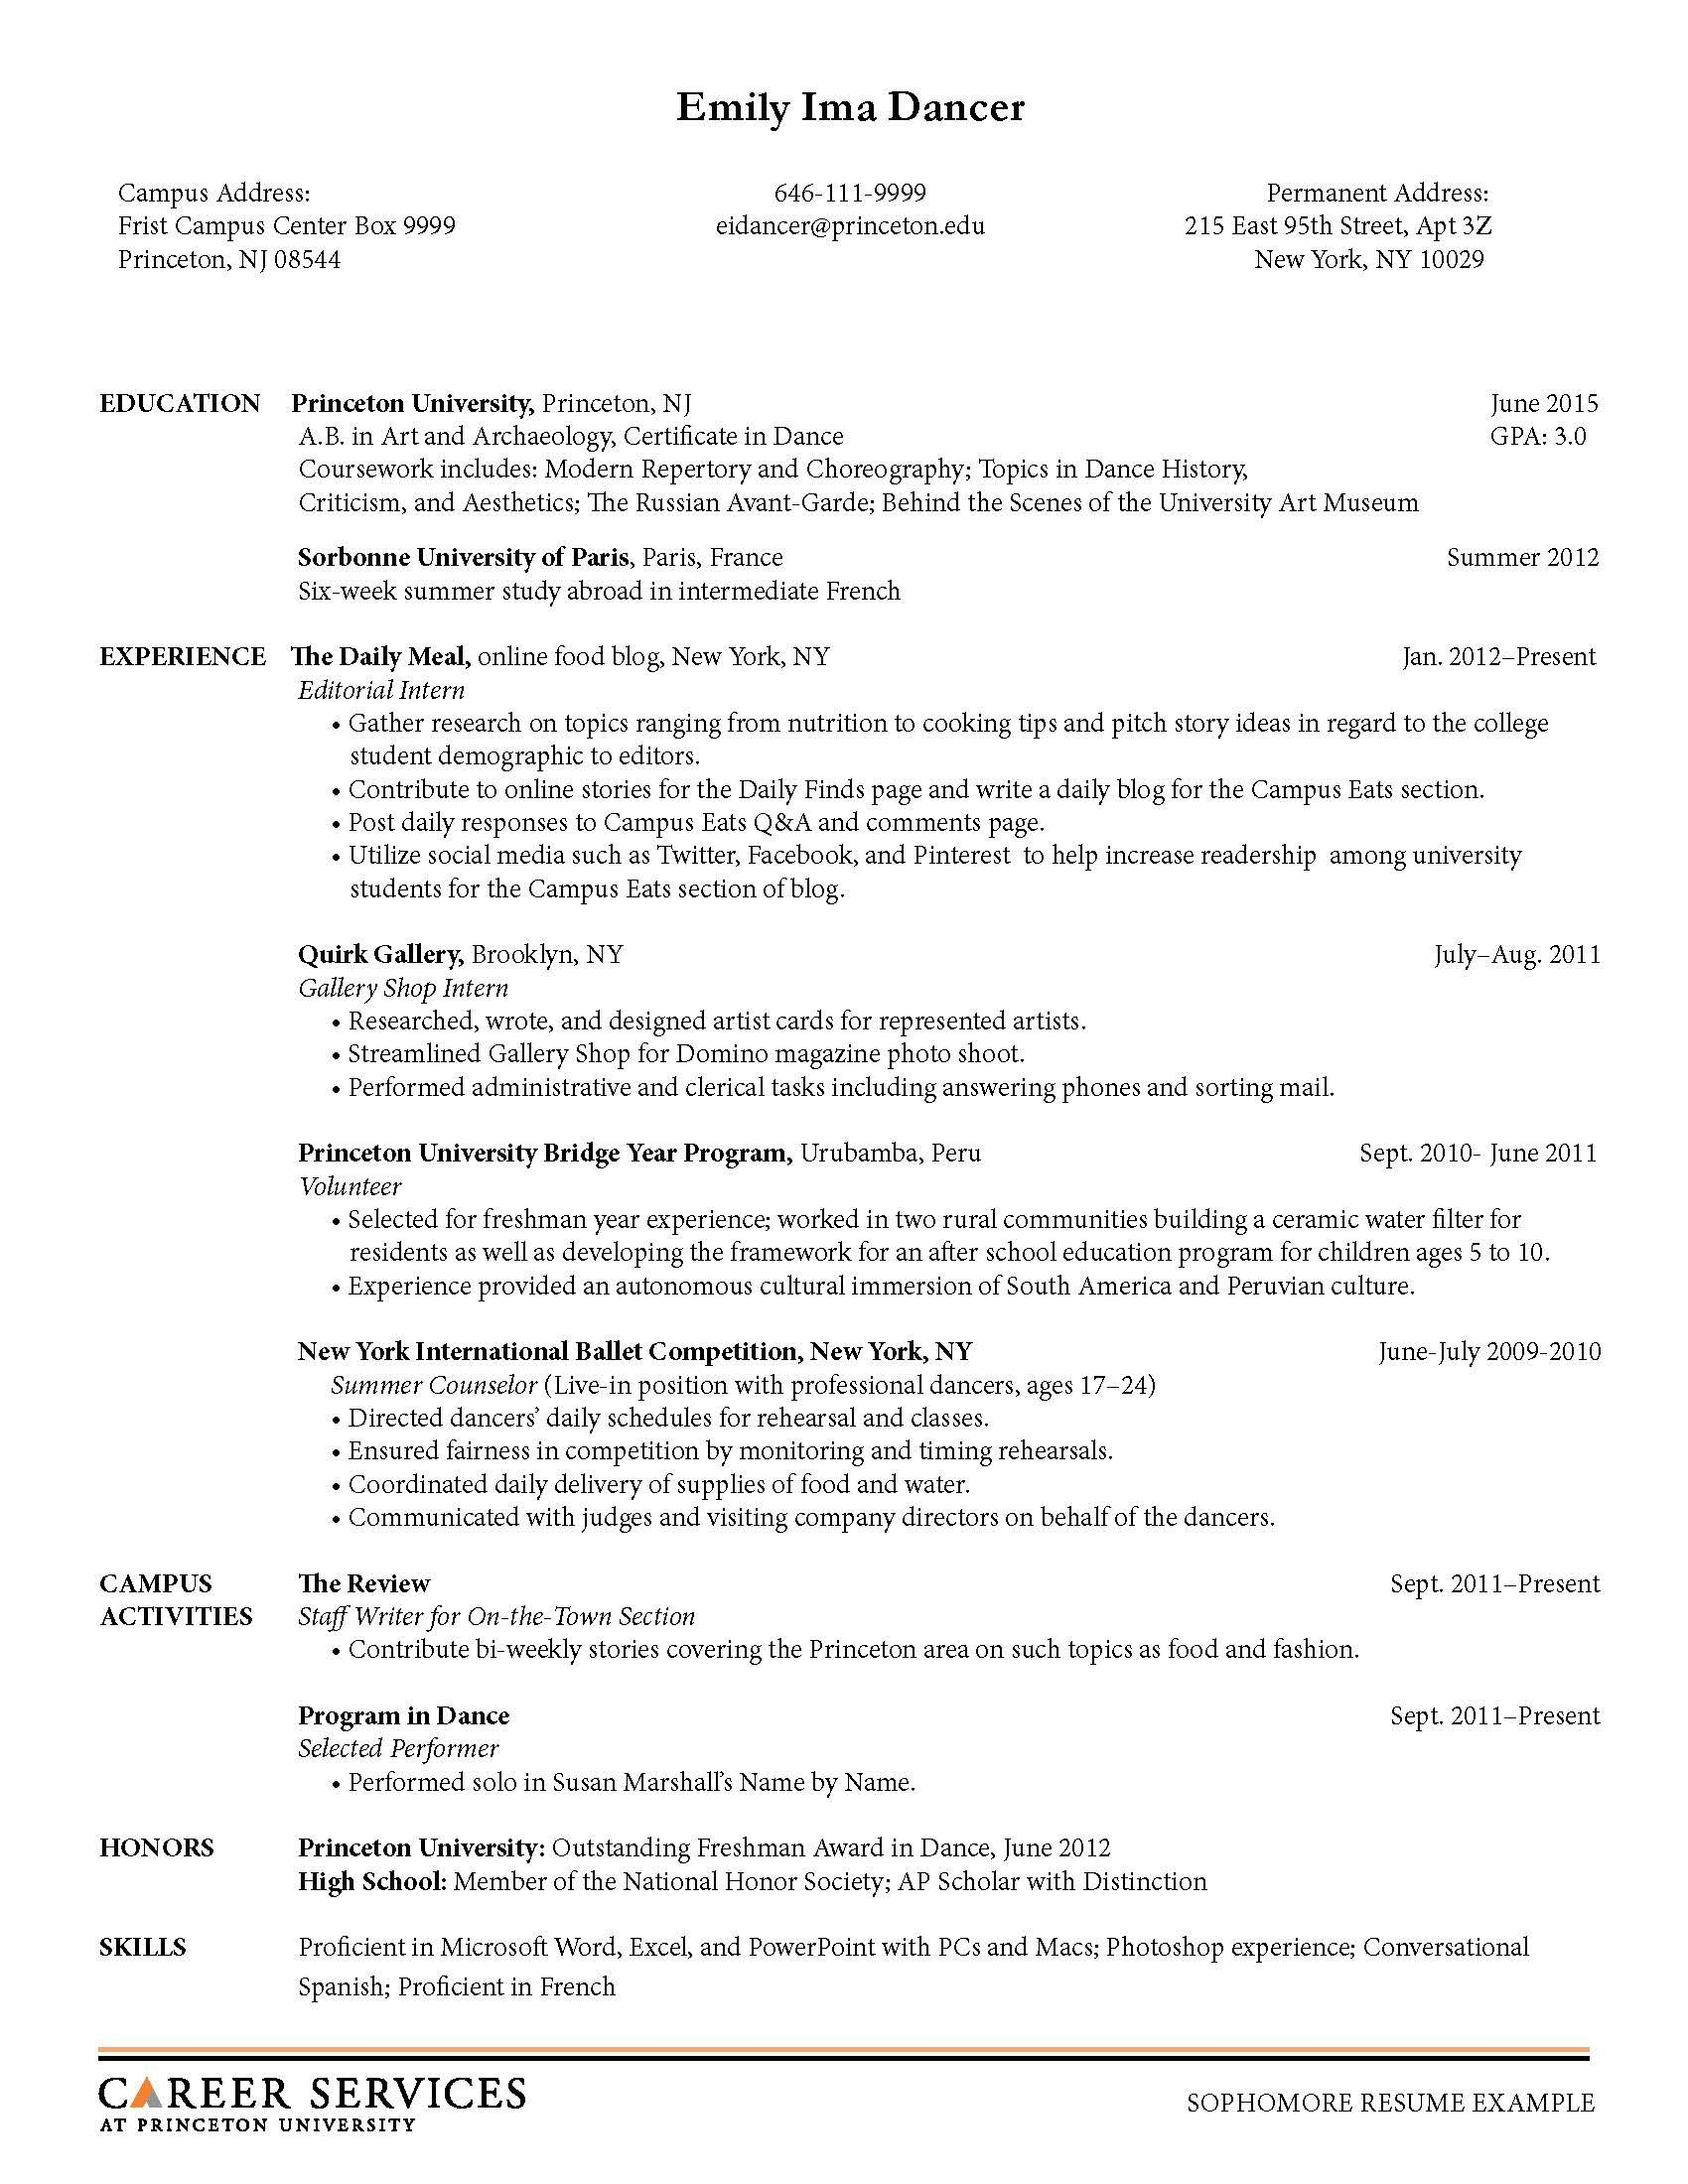 Picnictoimpeachus  Sweet Sample Resume Resume And Career On Pinterest With Fetching Maintenance Resume Besides Design Resume Furthermore Easy Resume With Cute Resume With No Experience Also Security Guard Resume In Addition Good Skills For Resume And Web Developer Resume As Well As Make A Resume Free Additionally Cover Letter For A Resume From Pinterestcom With Picnictoimpeachus  Fetching Sample Resume Resume And Career On Pinterest With Cute Maintenance Resume Besides Design Resume Furthermore Easy Resume And Sweet Resume With No Experience Also Security Guard Resume In Addition Good Skills For Resume From Pinterestcom